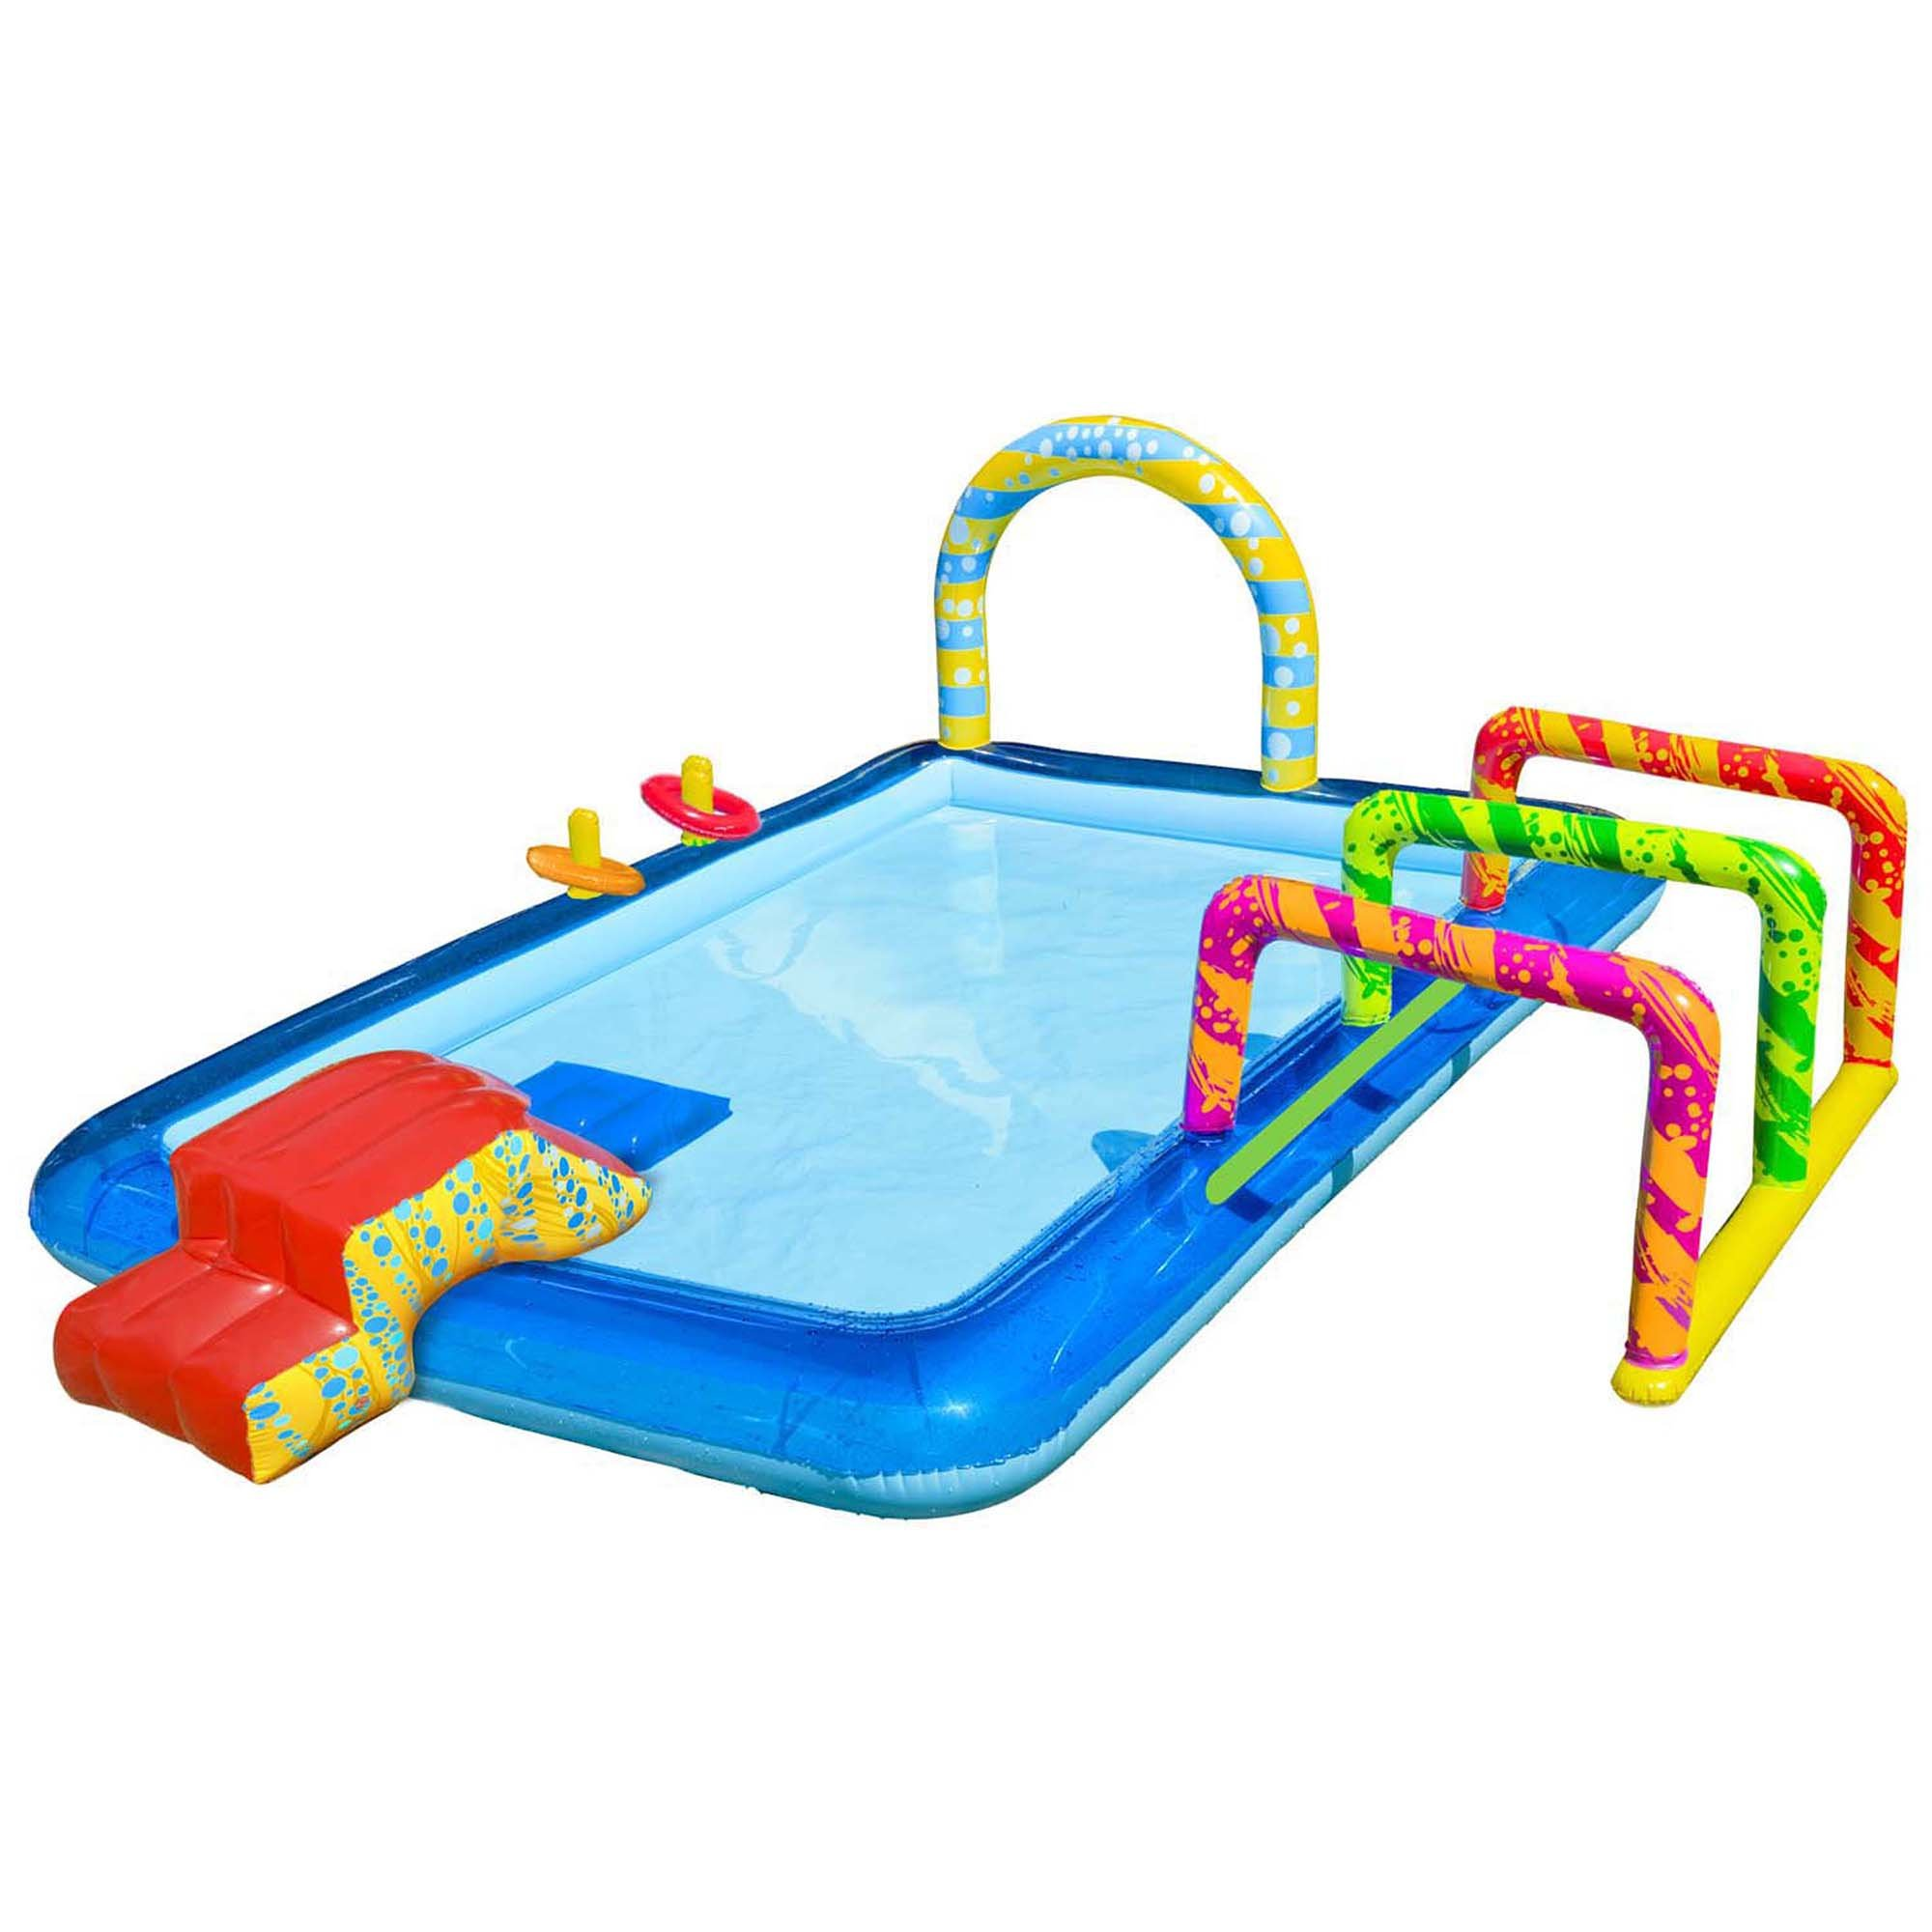 BANZAI Obstacle Course Activity Pool by BANZAI (Image #2)